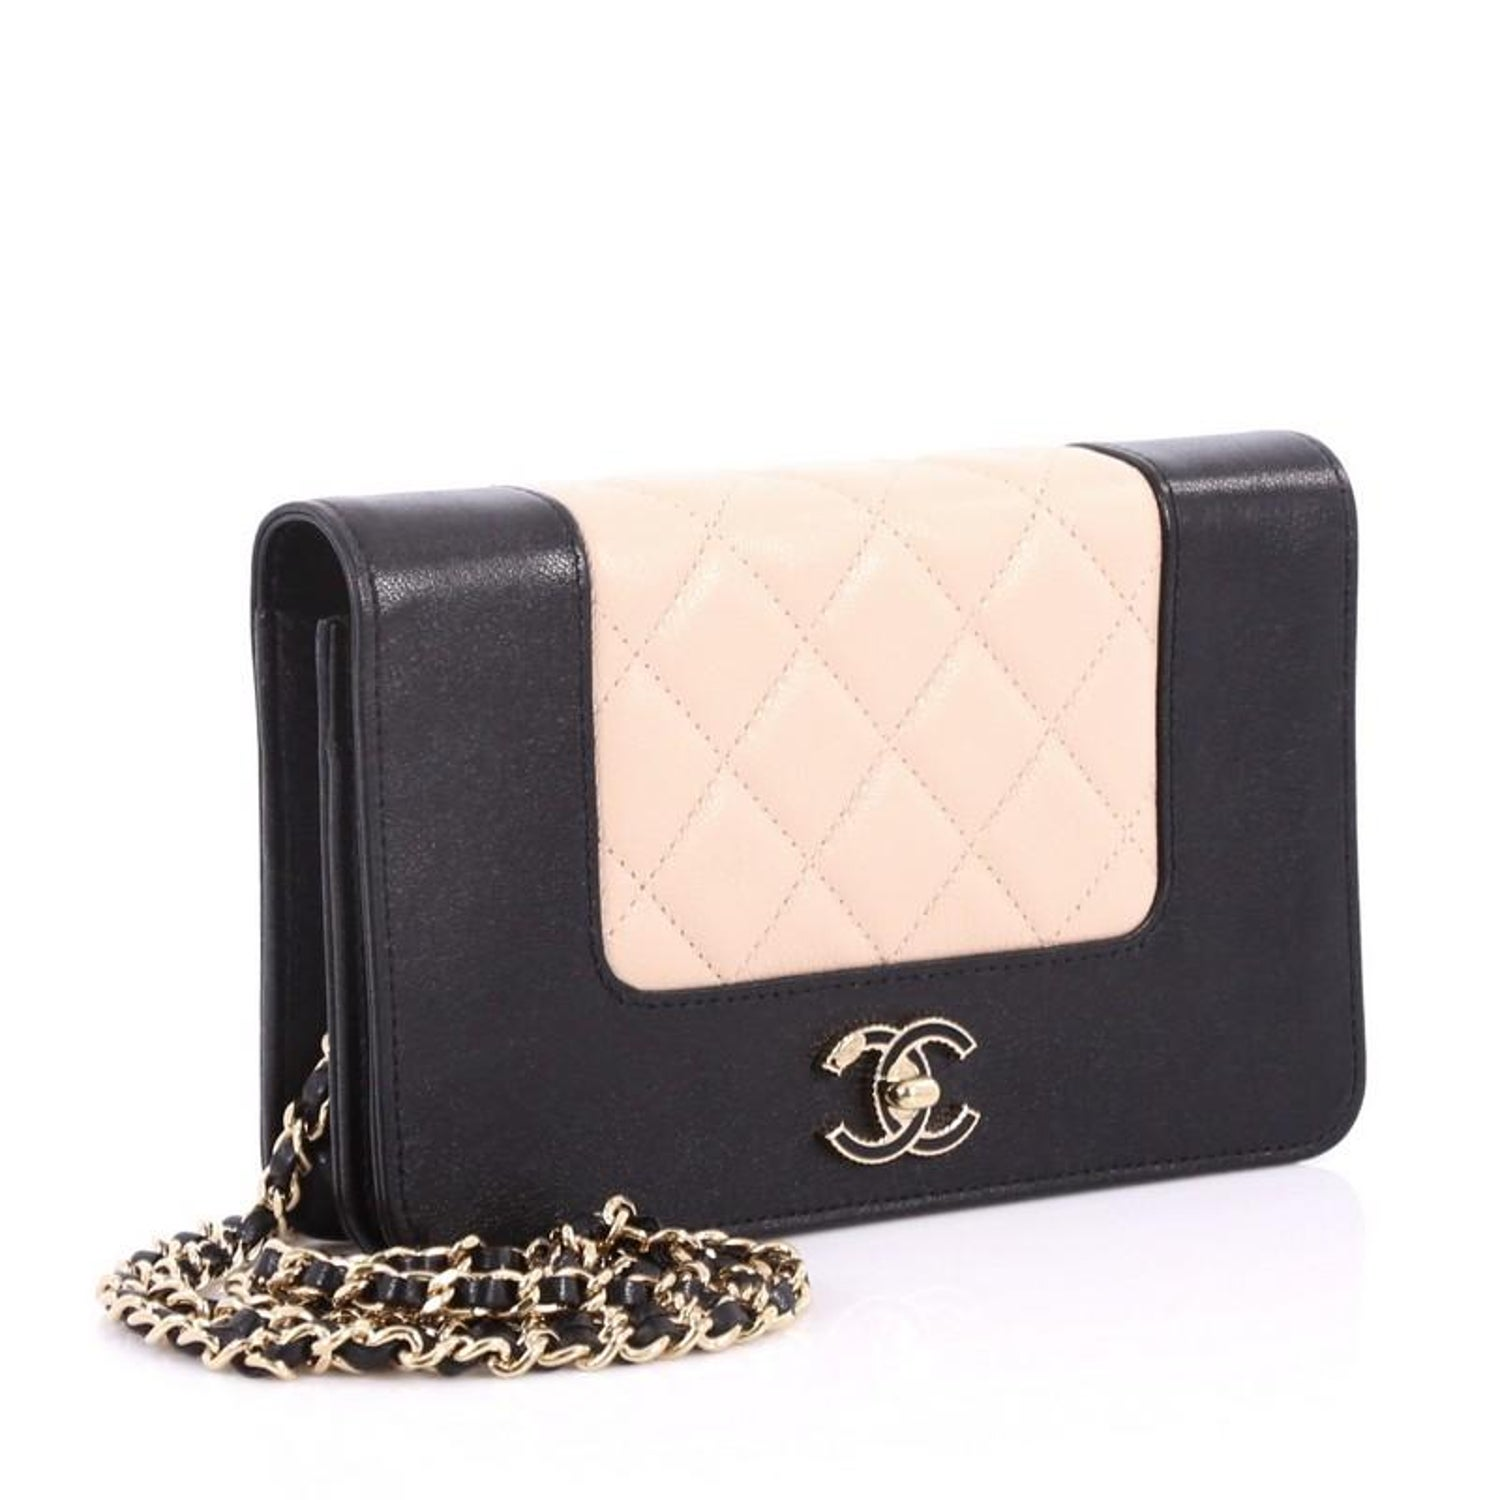 08fd25a7aedd Chanel Mademoiselle Vintage Wallet On Chain Quilted Sheepskin at 1stdibs